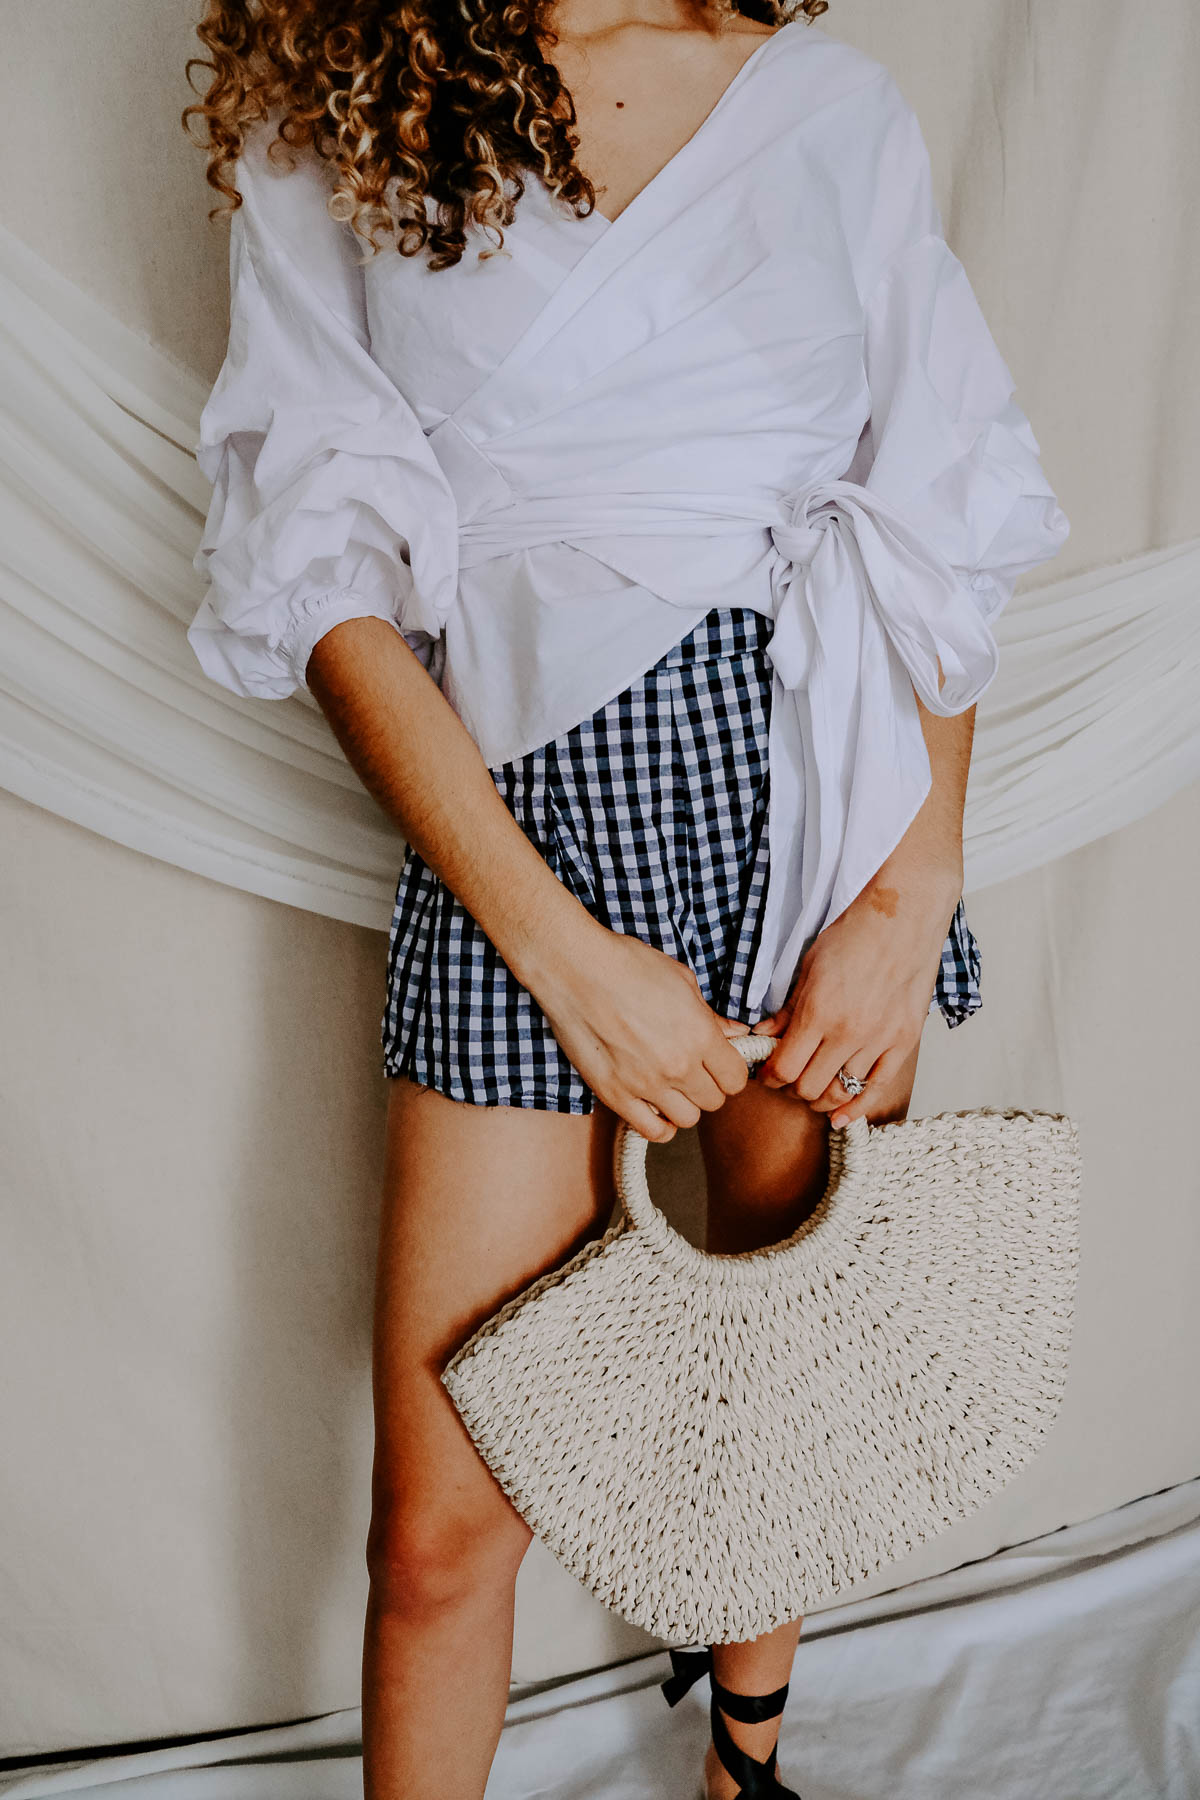 Wondering what spring staples you need for your spring outfits? Check out this post on what you need this season and this gingham outfit is one of them!